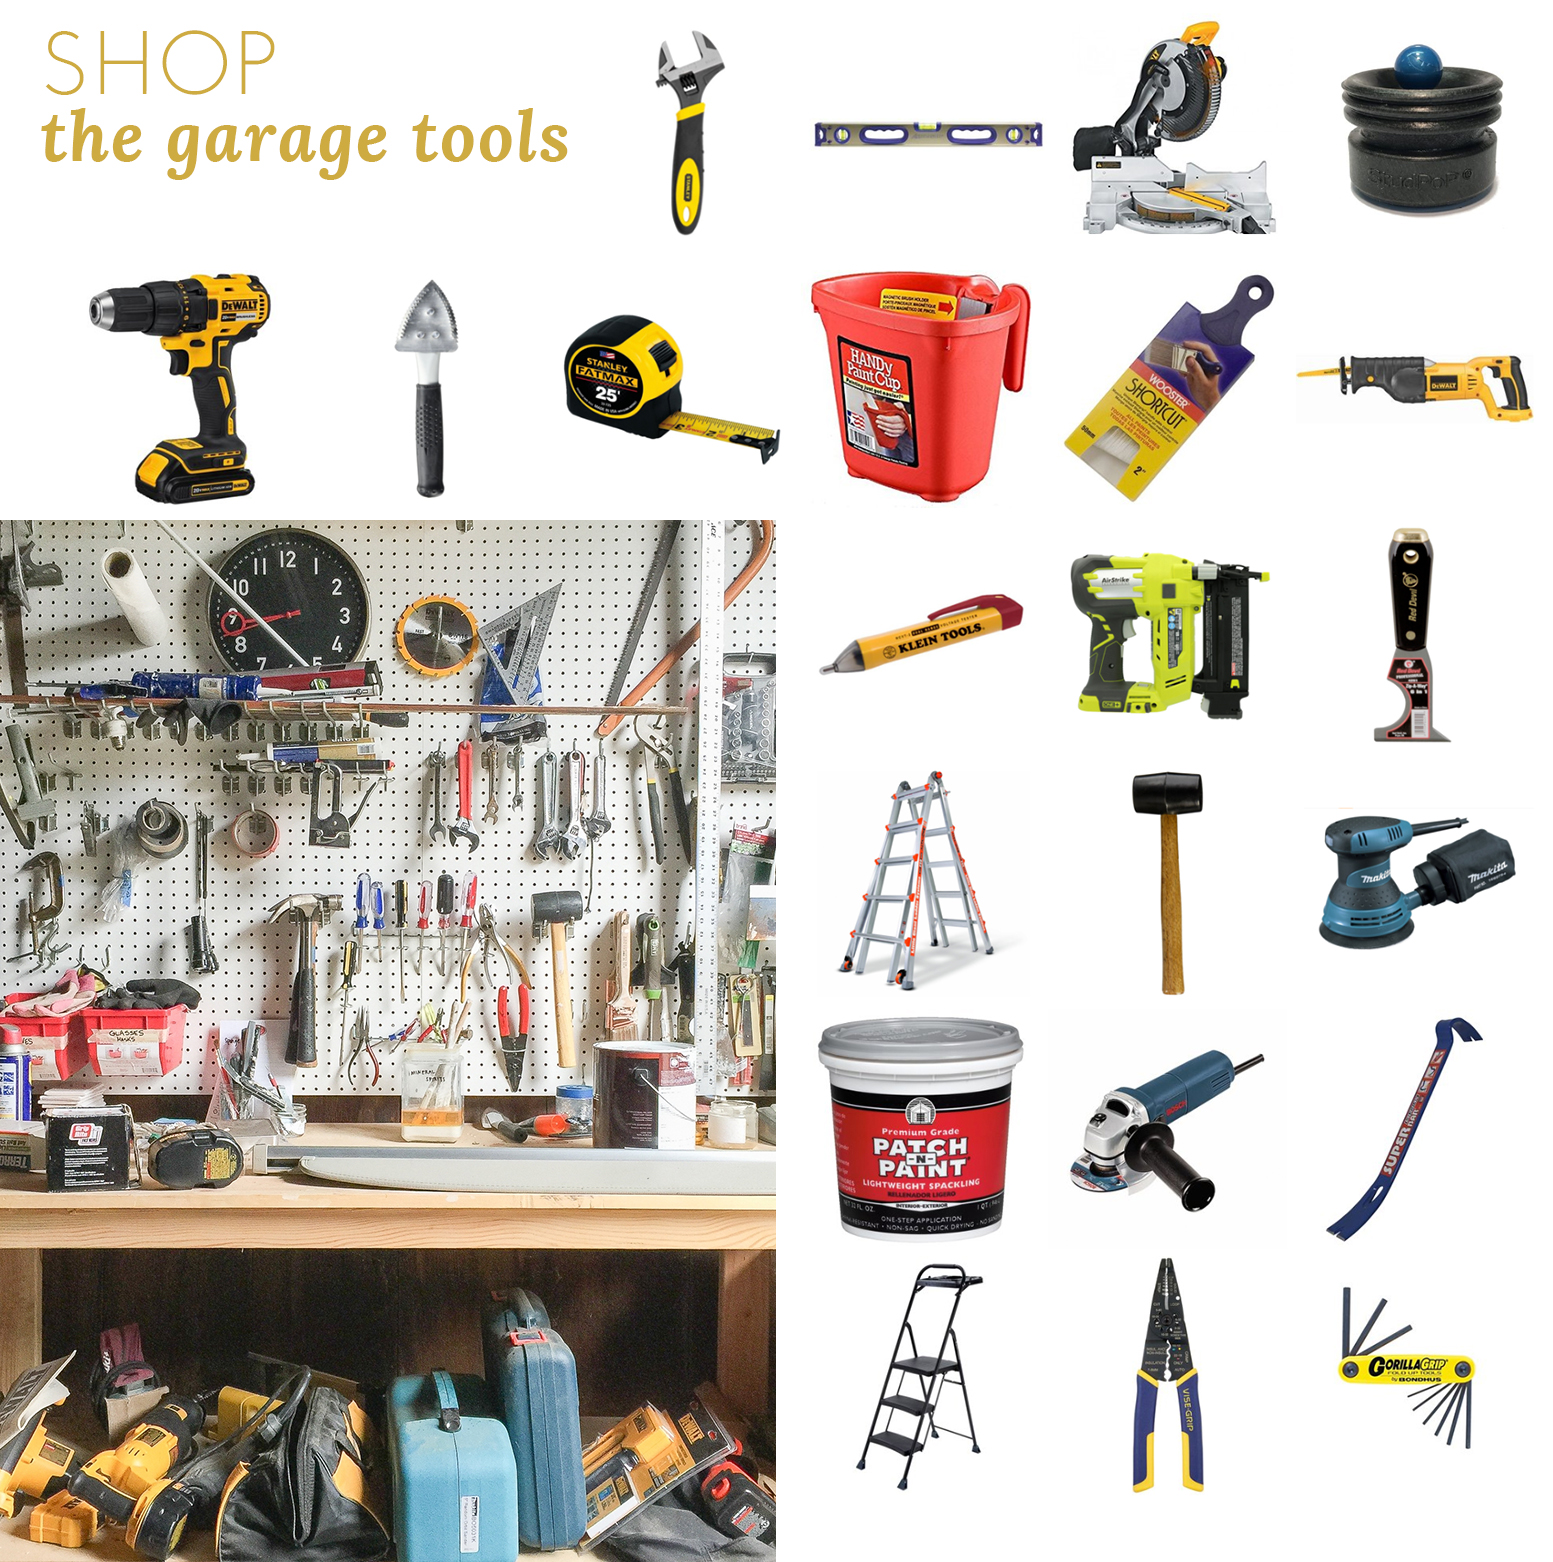 Shop+the+garage+tools+The+Gold+Hive.jpg